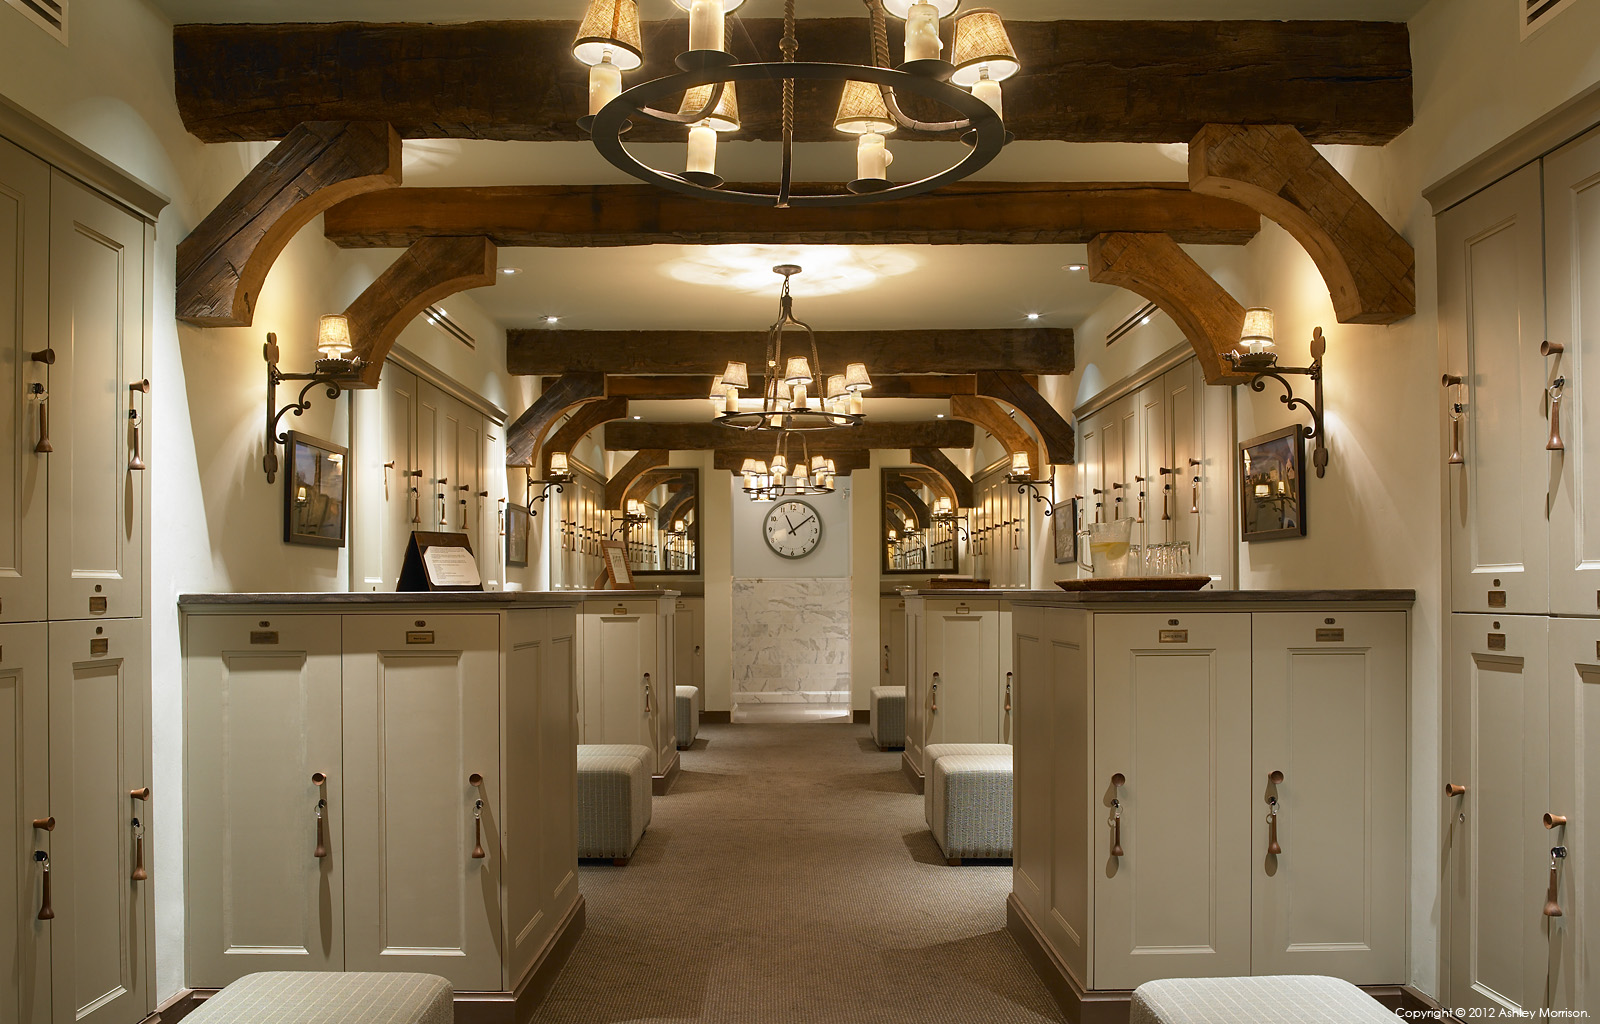 The Locker room in the Member's Clubhouse at the Trump International Golf Links & Hotel in County Clare.